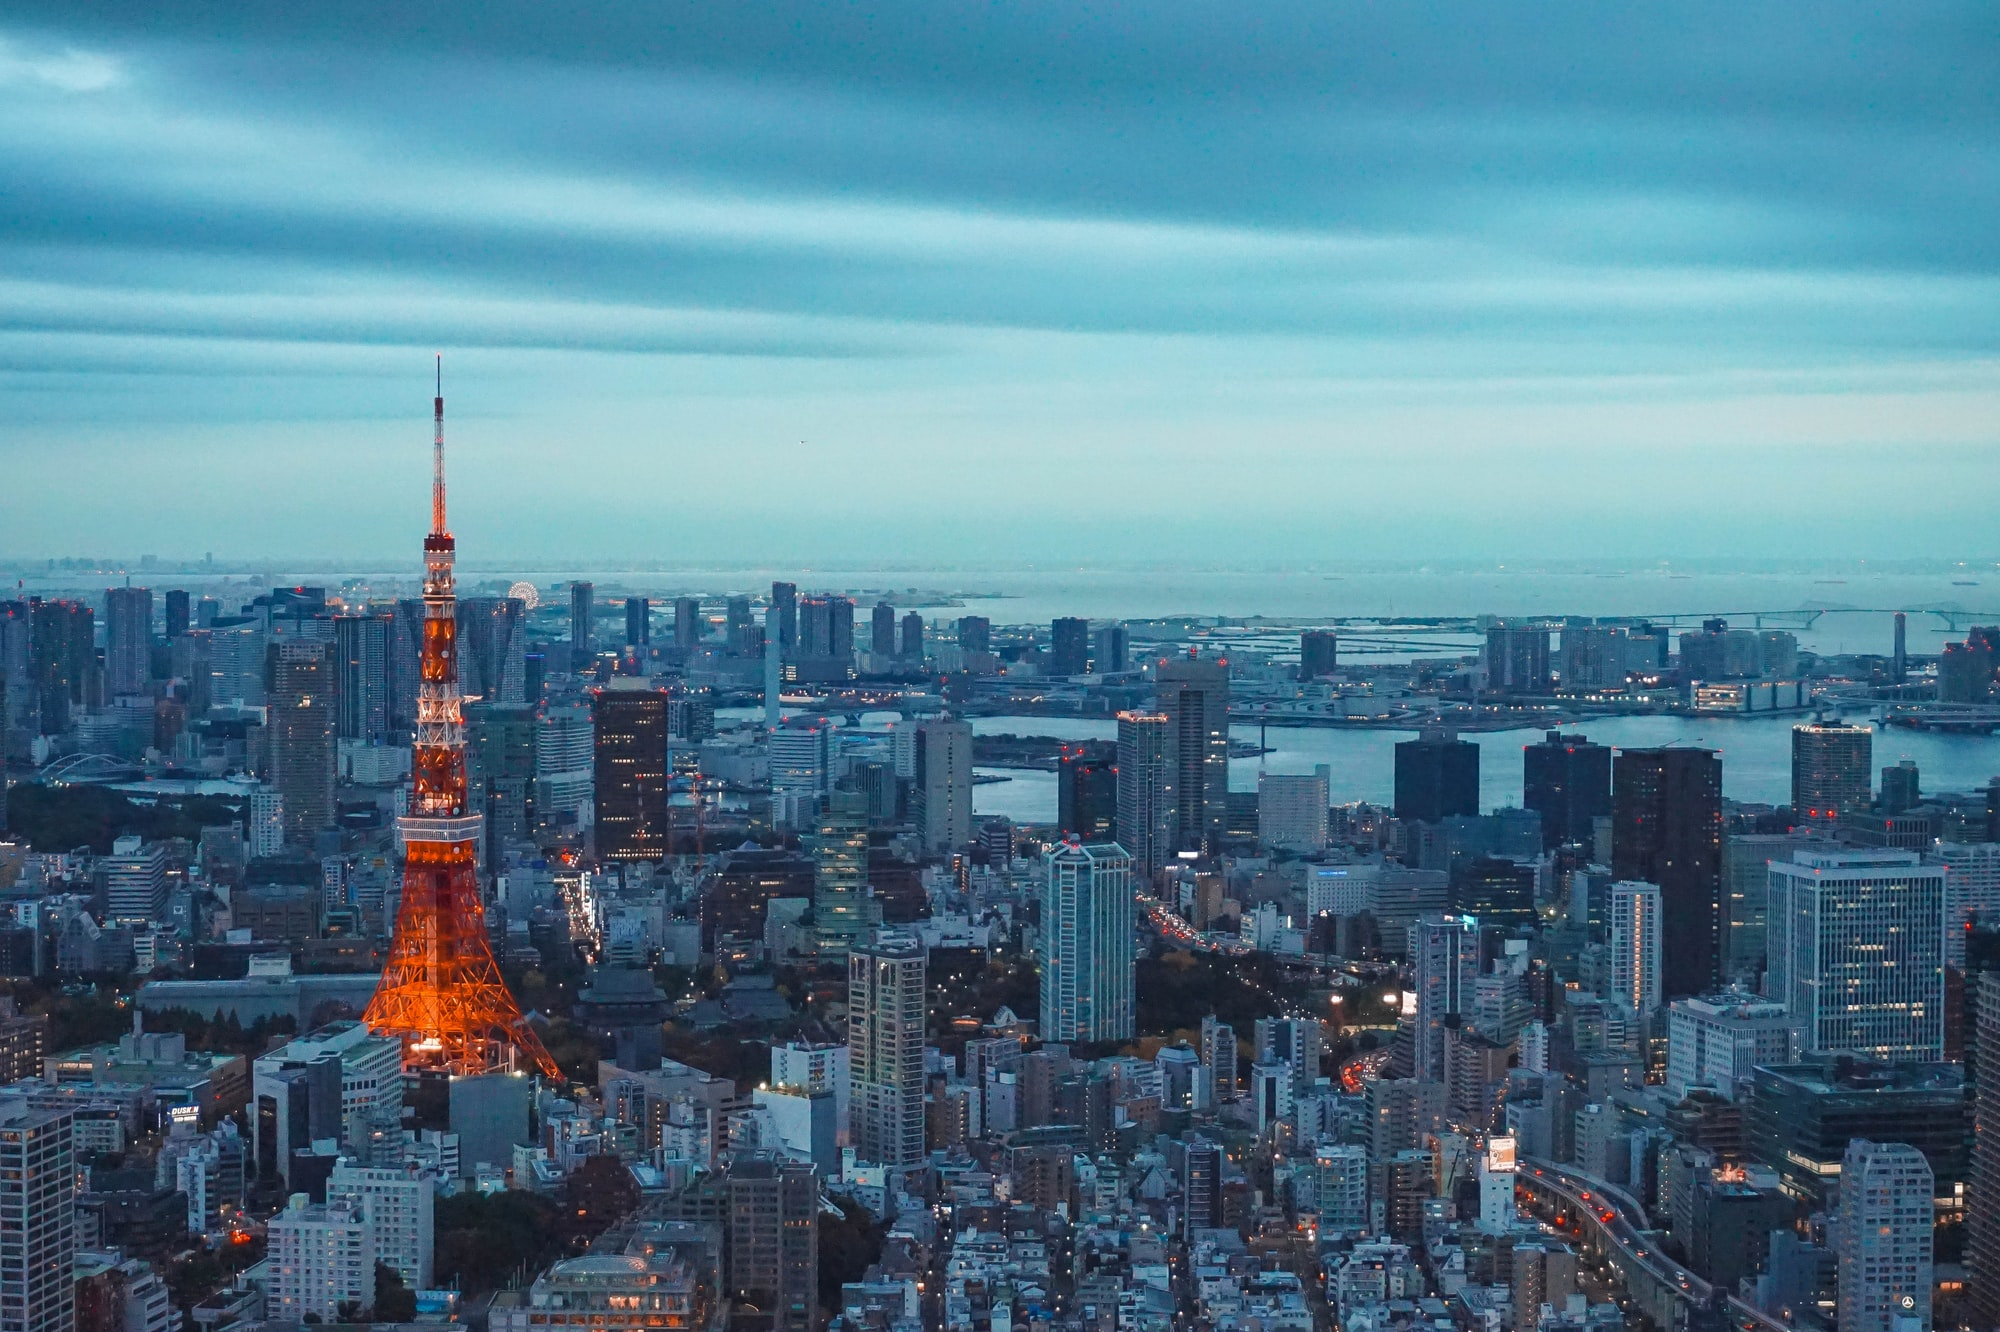 The best place to take a photo of the Tokyo Tower is at the viewing deck of Mori building in Roponggi Hills